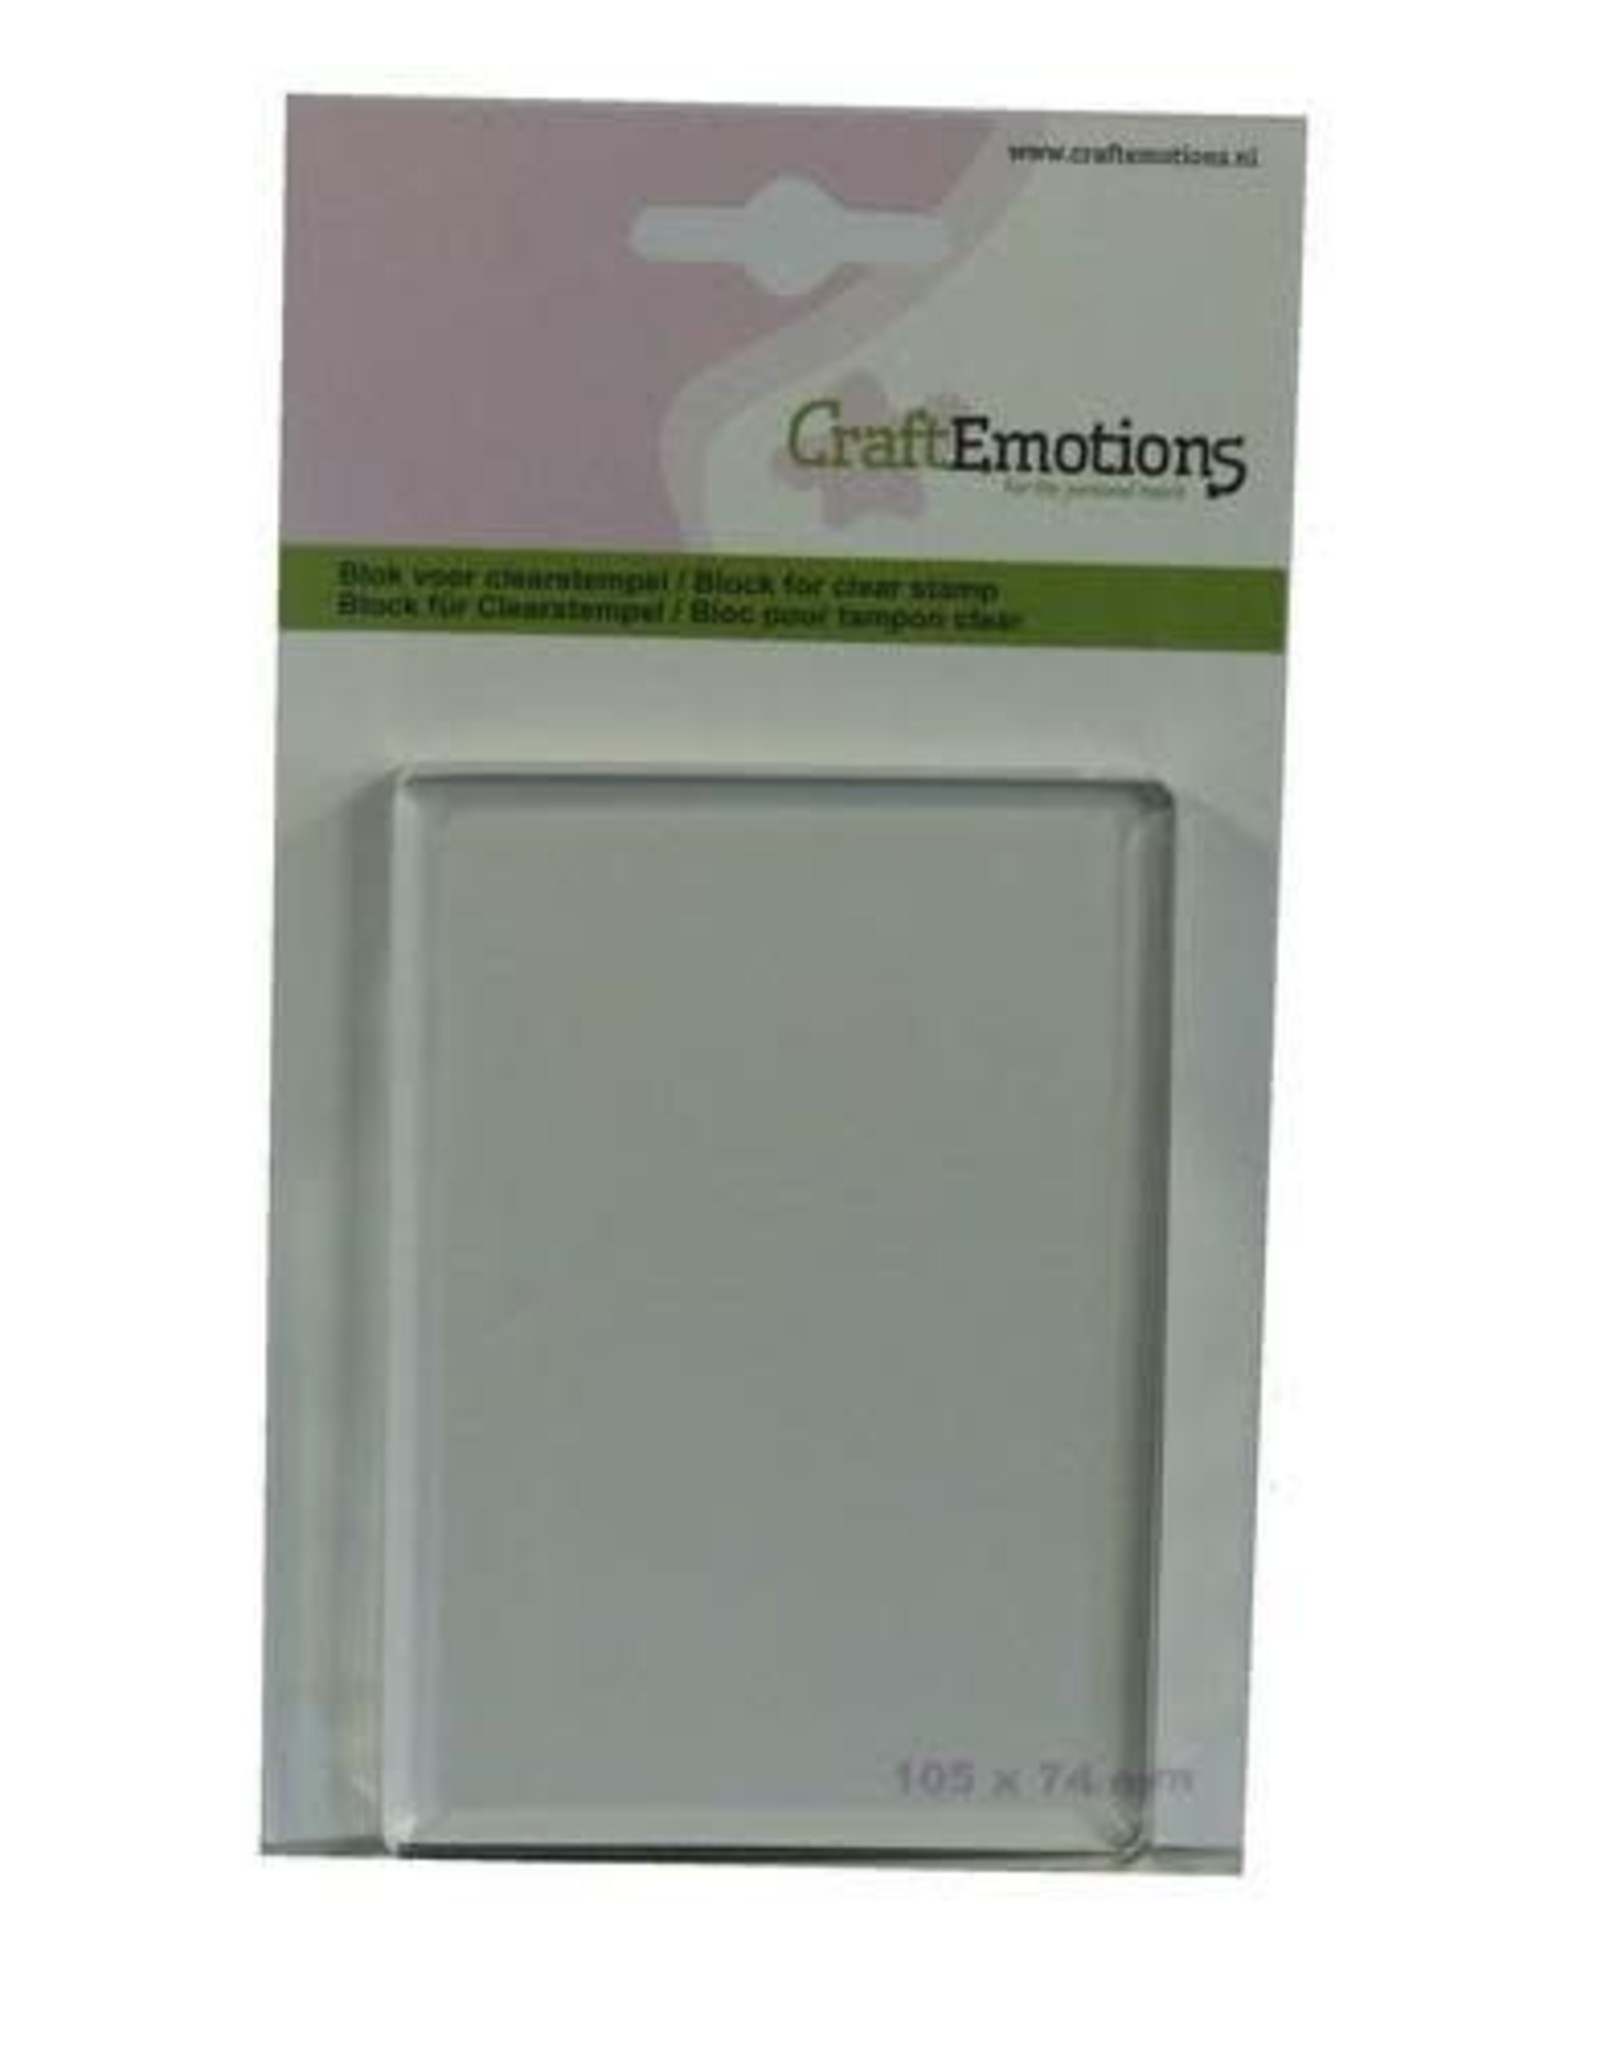 Craft Emotions CraftEmotions blok voor clearstempel 105x74mm - 8mm